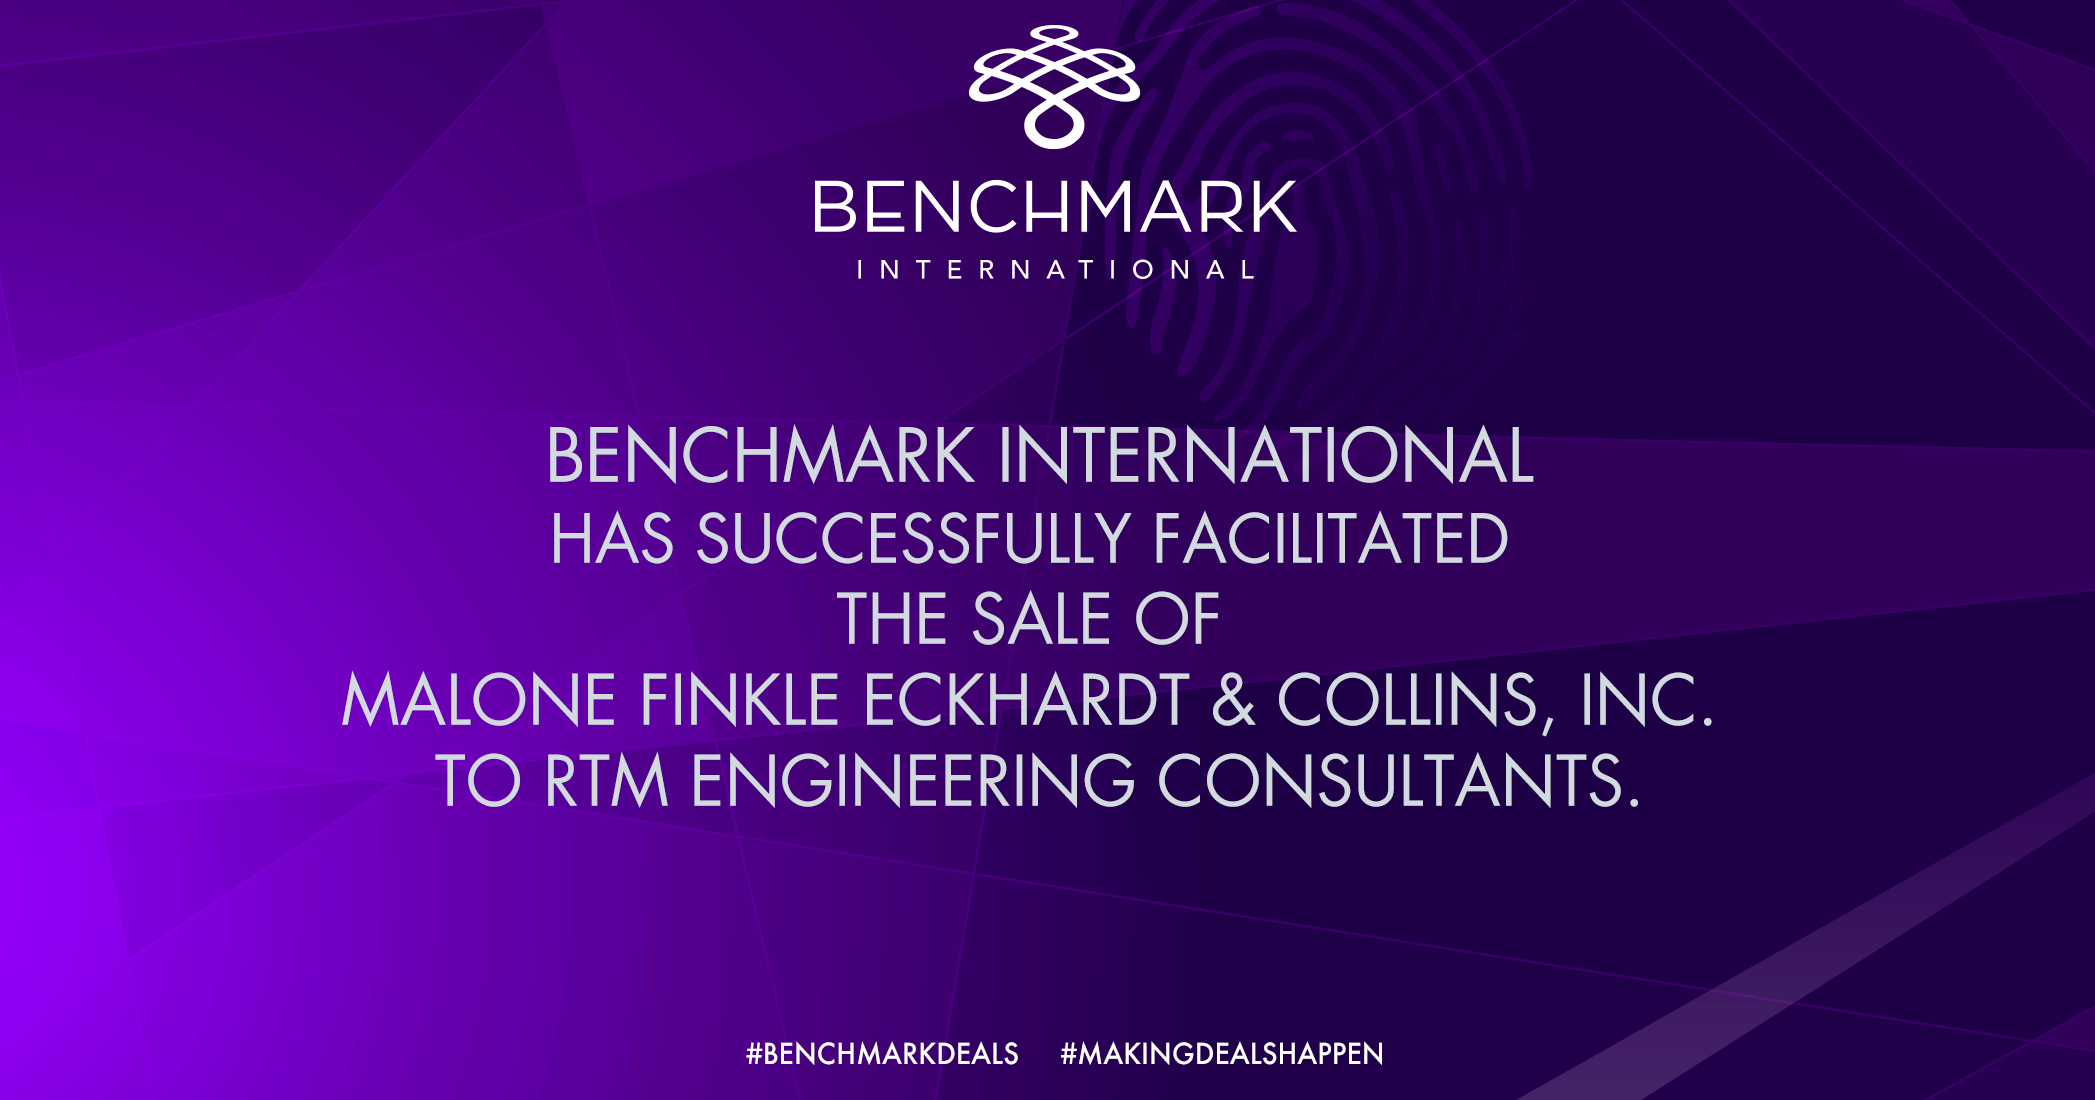 Benchmark International has successfully facilitated the sale of Malone Finkle Eckhardt & Collins to RTM Engineering Consultants